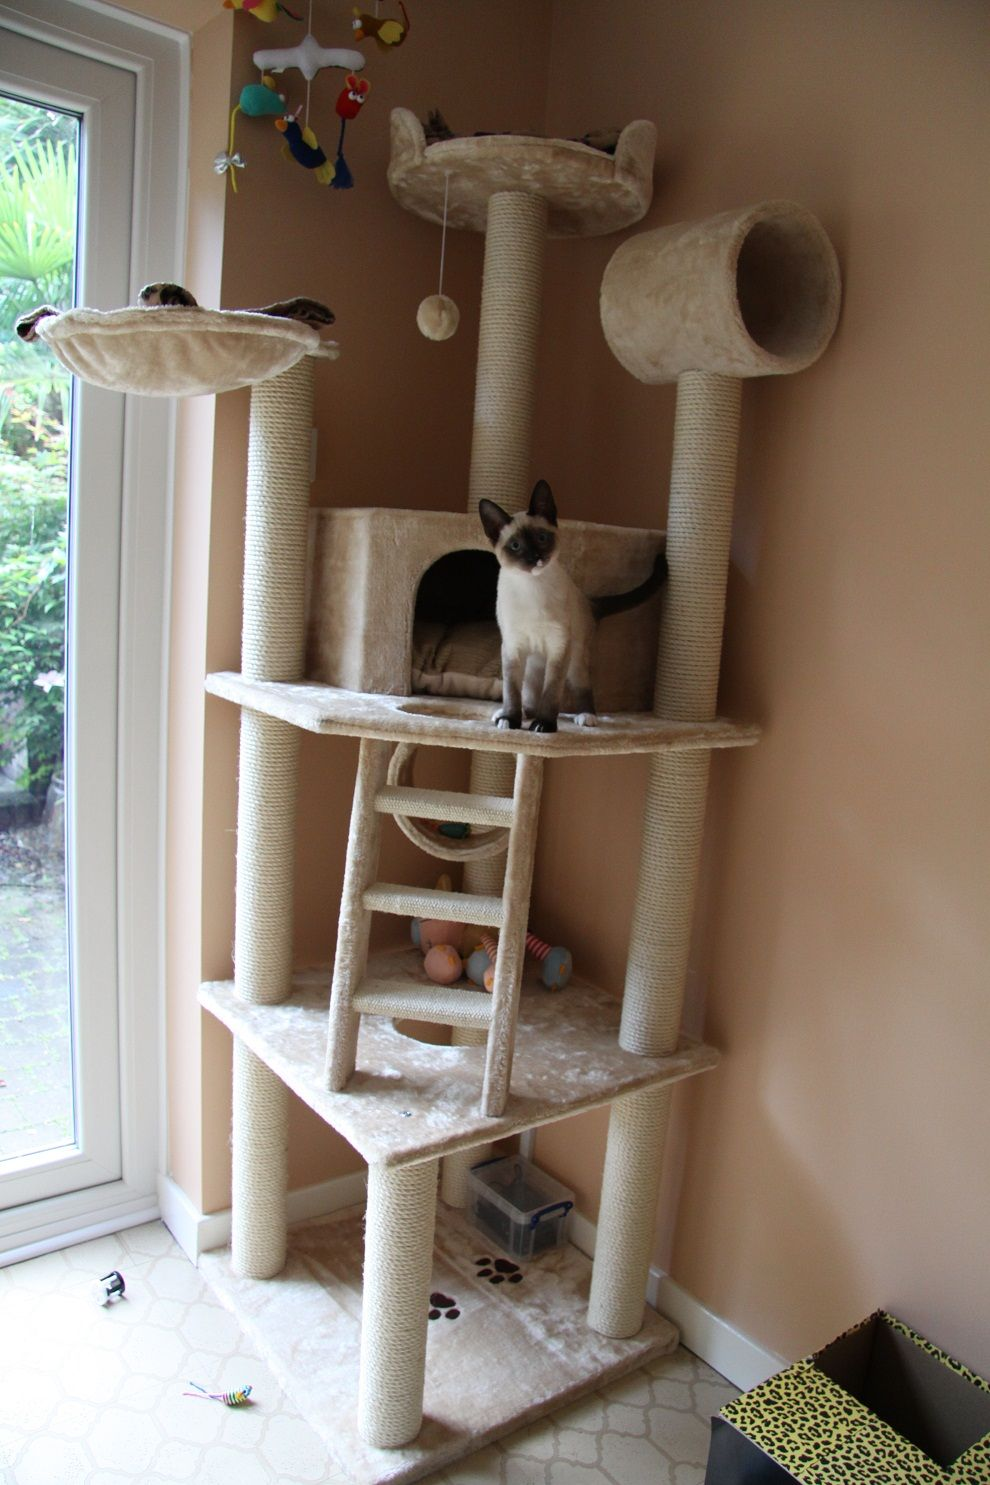 12 Cool Cat Tower Plans To Inspire You Pets Furniture Ideas Trucs De Chat Jeux Pour Chat Arbre à Chat Diy